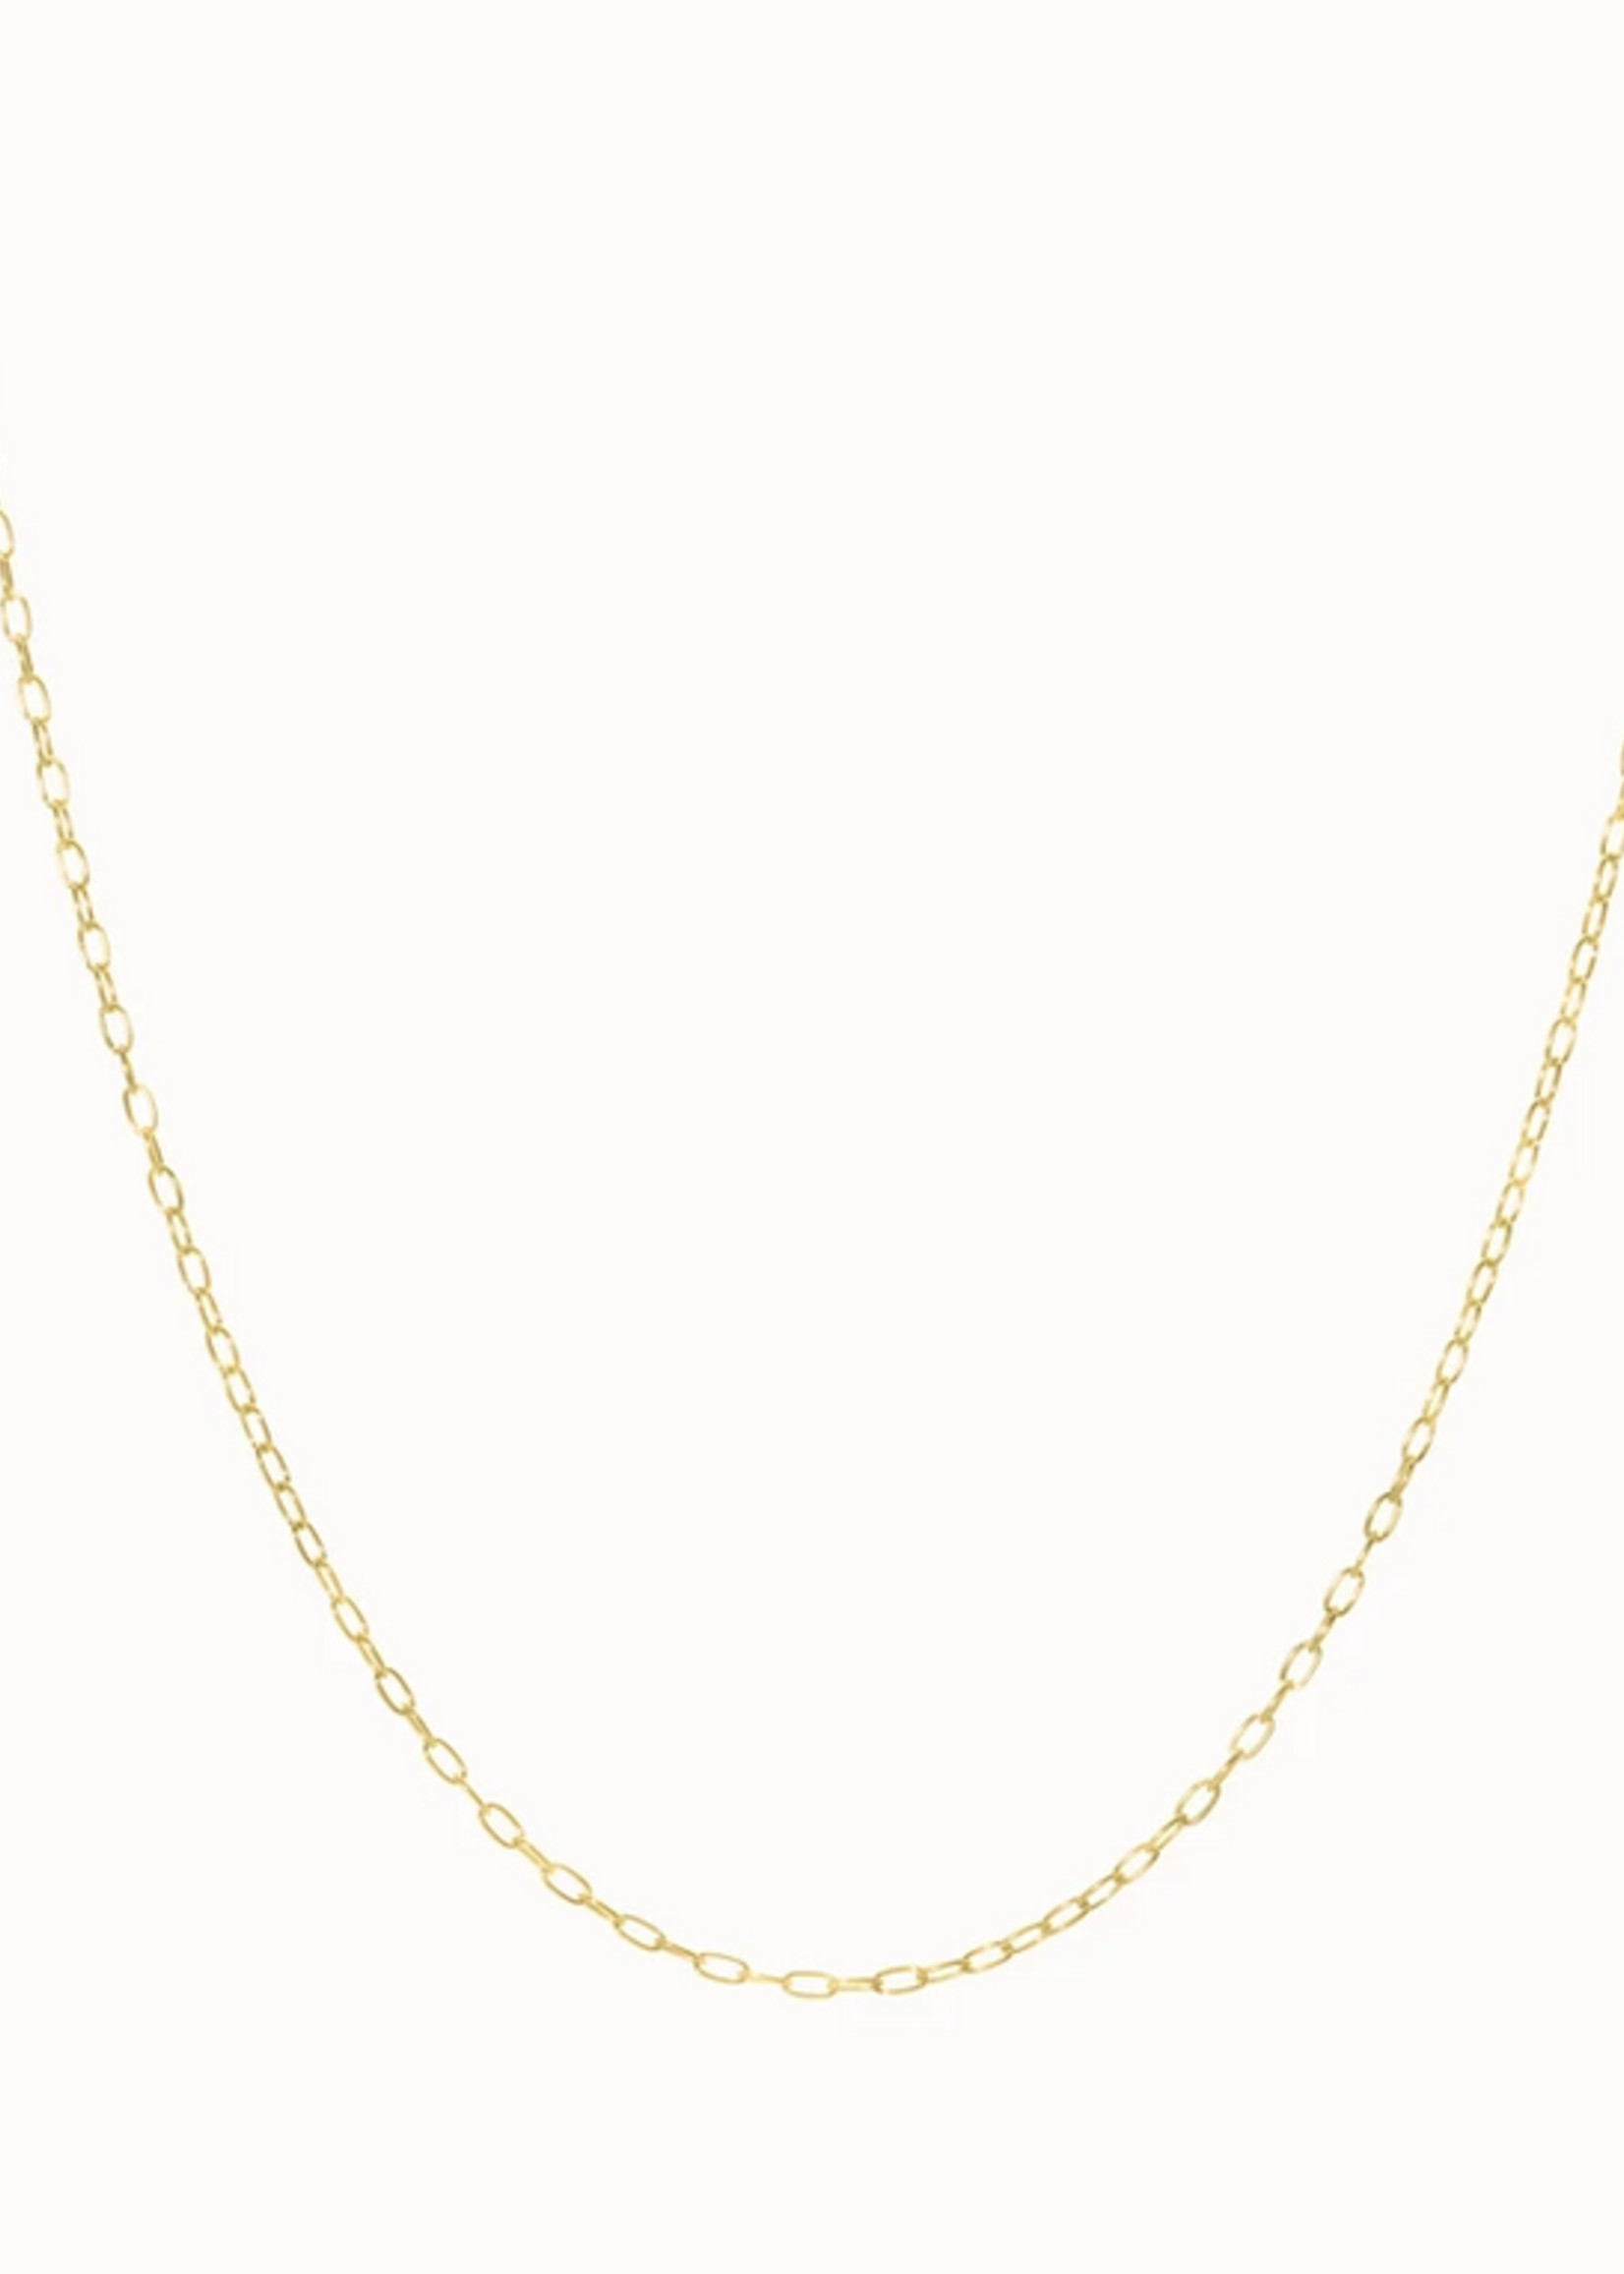 Flawed Oval necklace